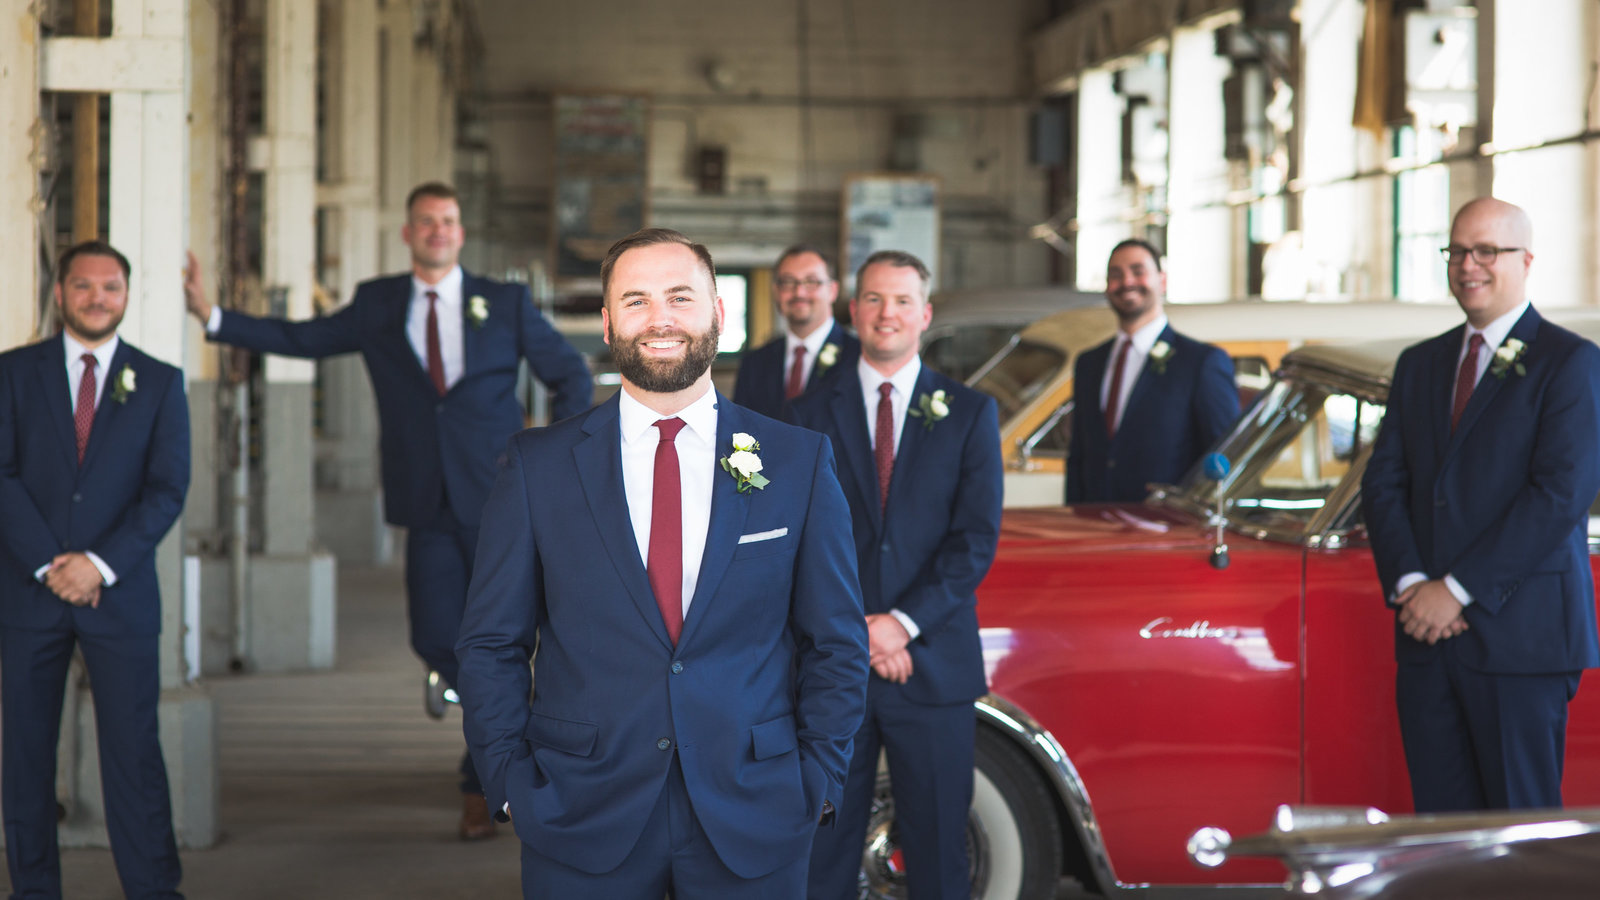 Industrial Car Themed Wedding at the Packard Proving Grounds in Detroit Michigan. Destination Wedding. Photo By: Adore Wedding Photography